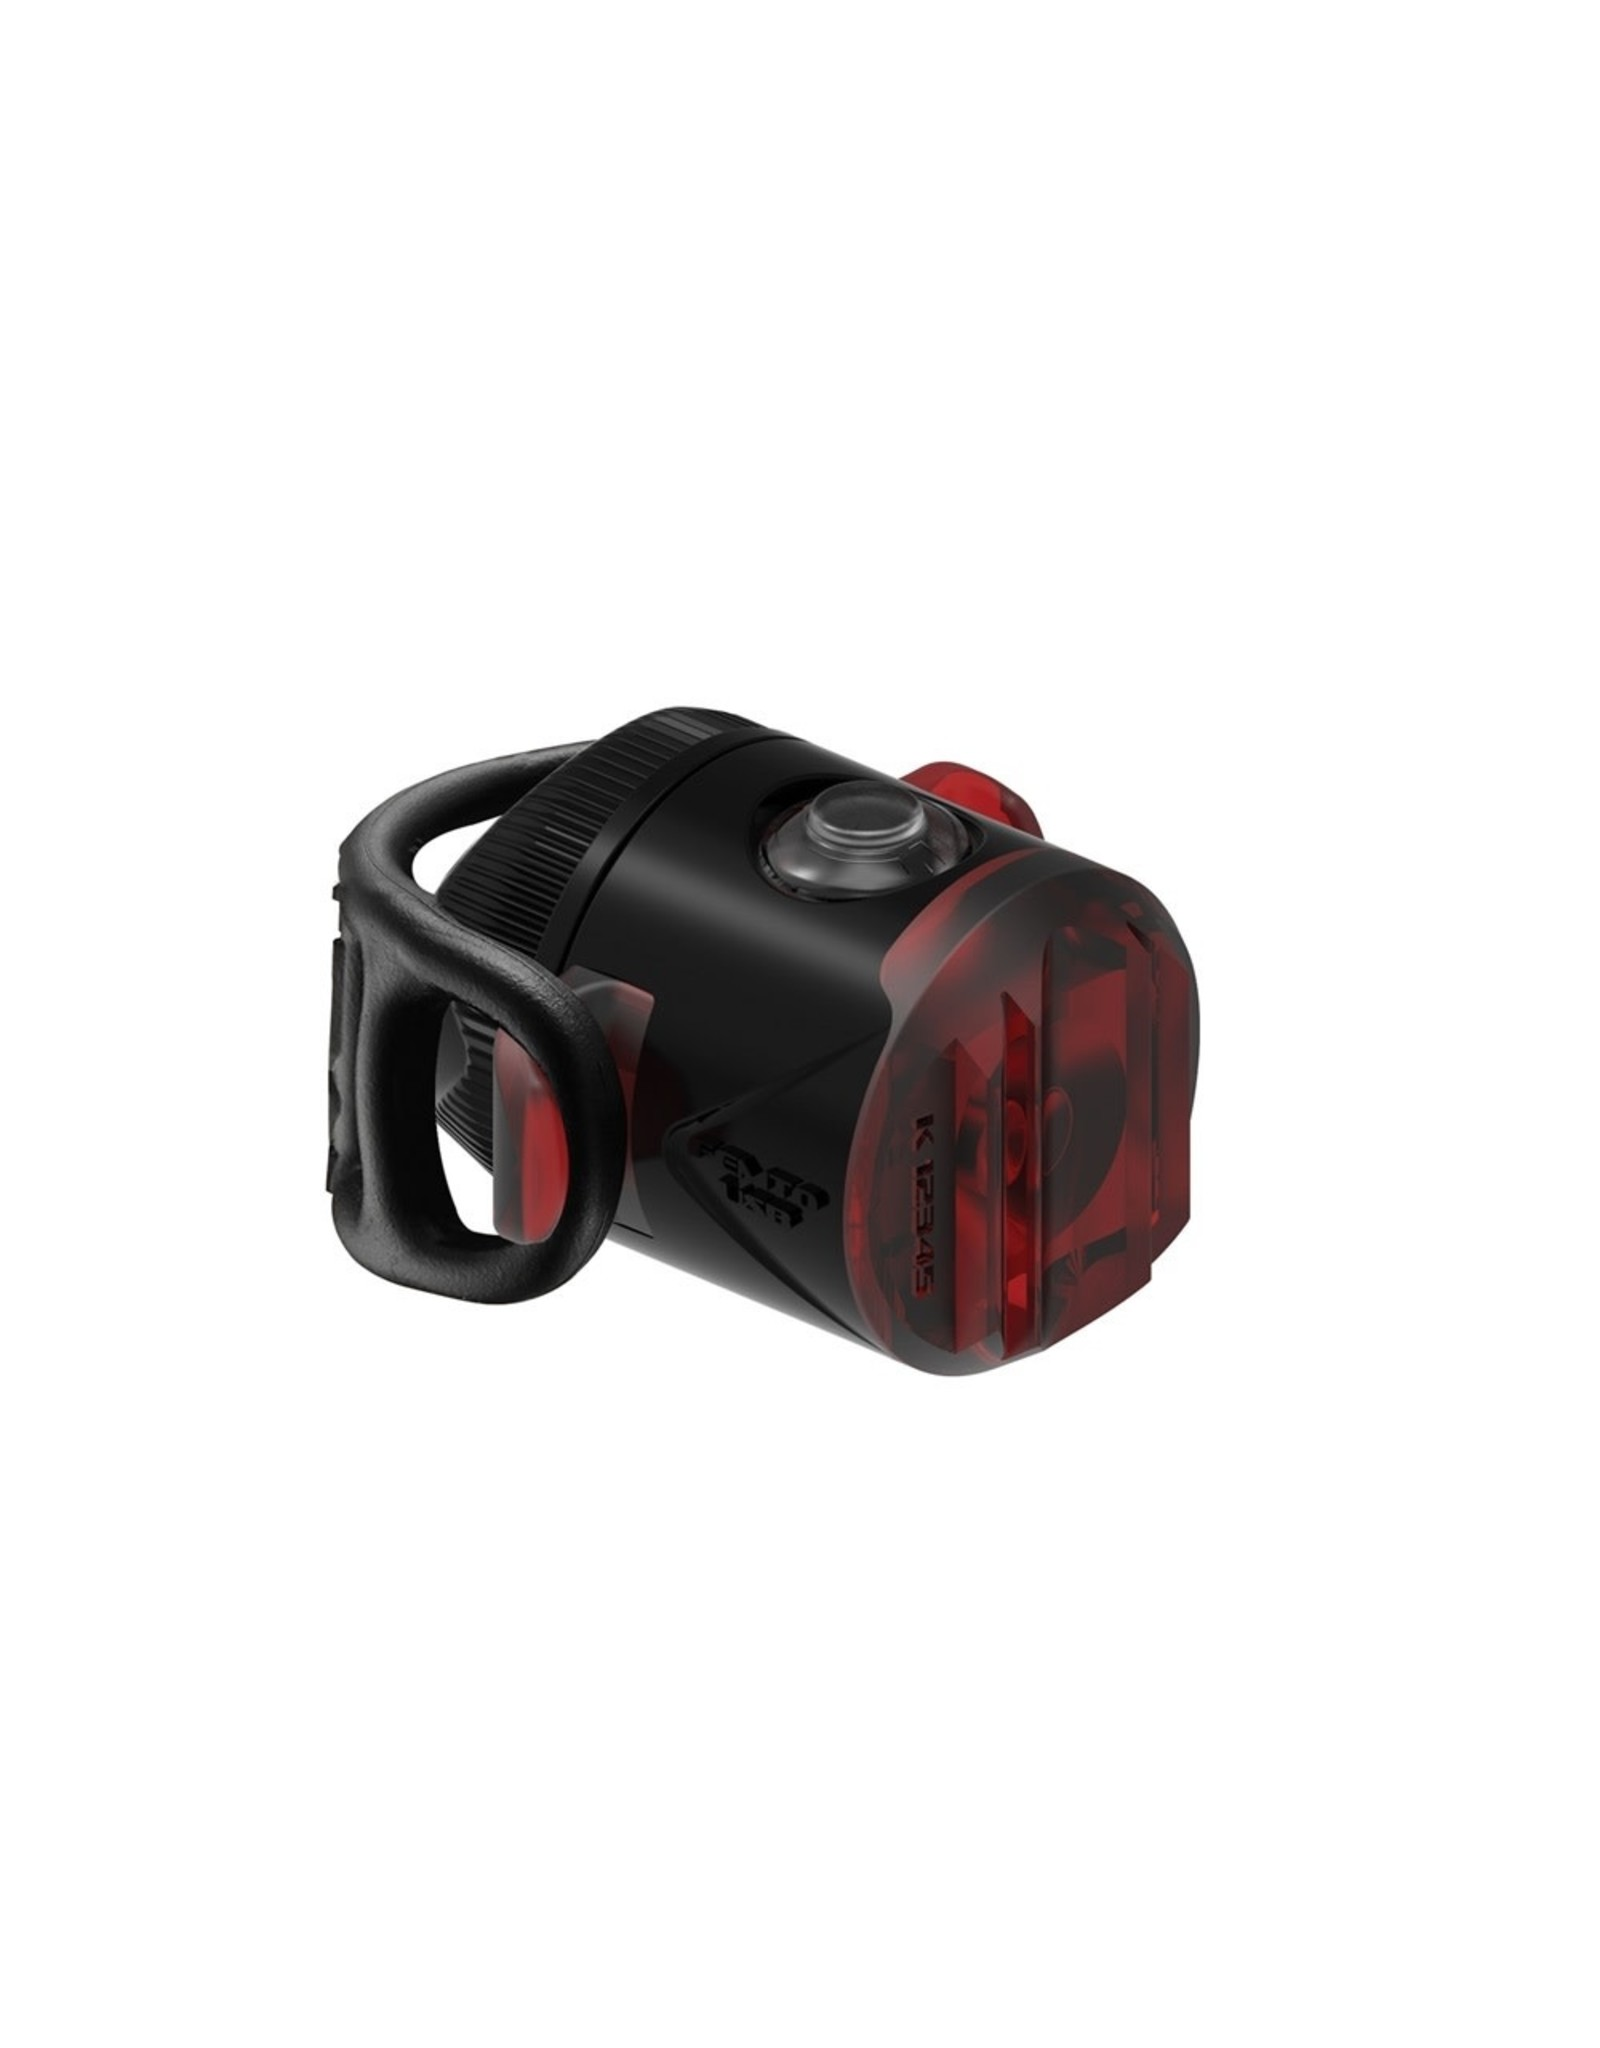 Lezyne Rear Light Femto USB